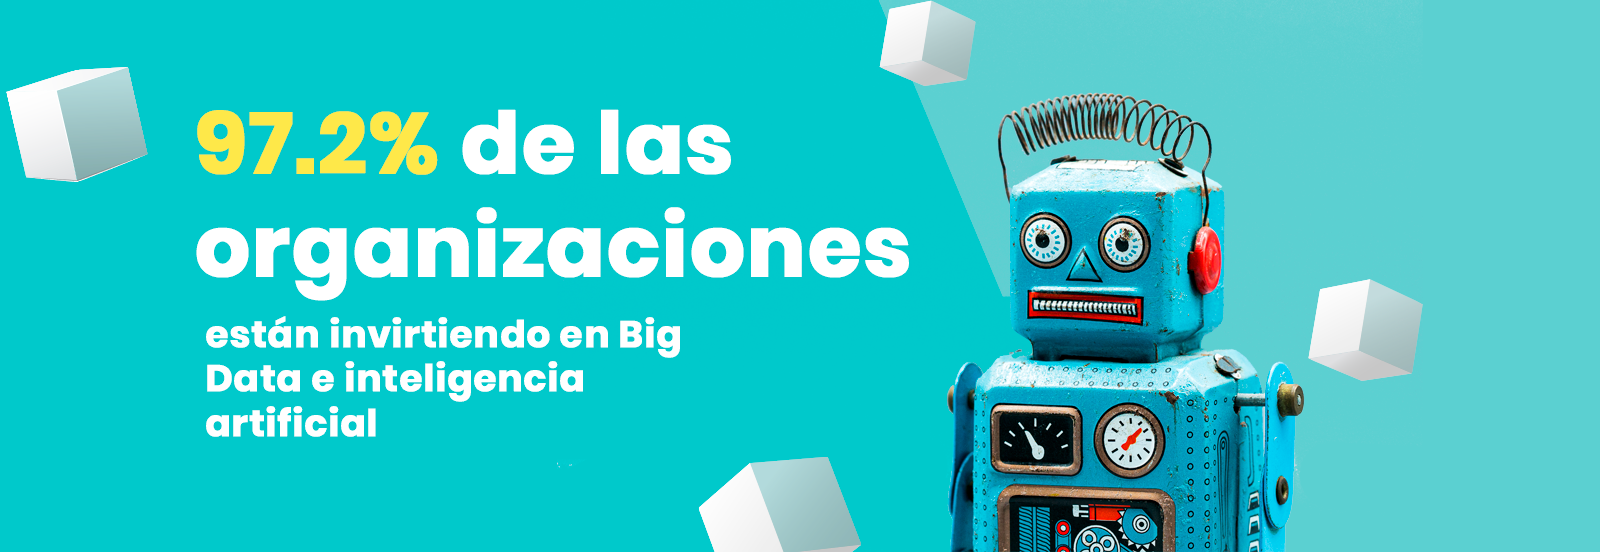 Big Data, Inteligencia Artificial